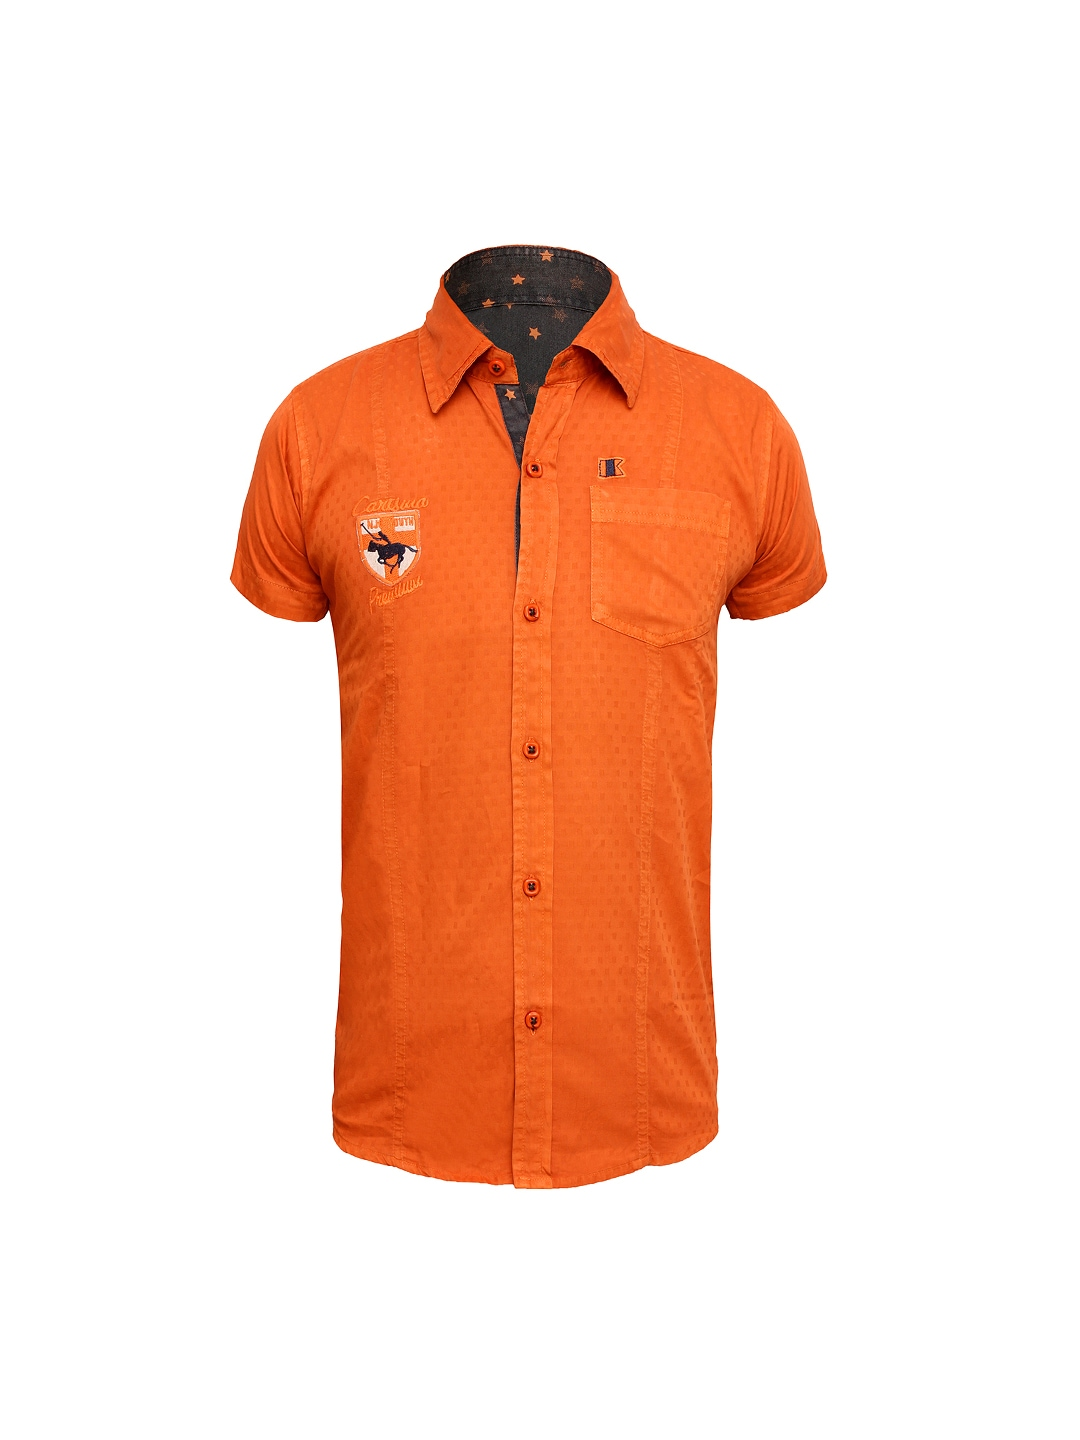 Myntra jazzup boys orange casual shirt 788547 buy myntra for Shirts online shopping lowest price